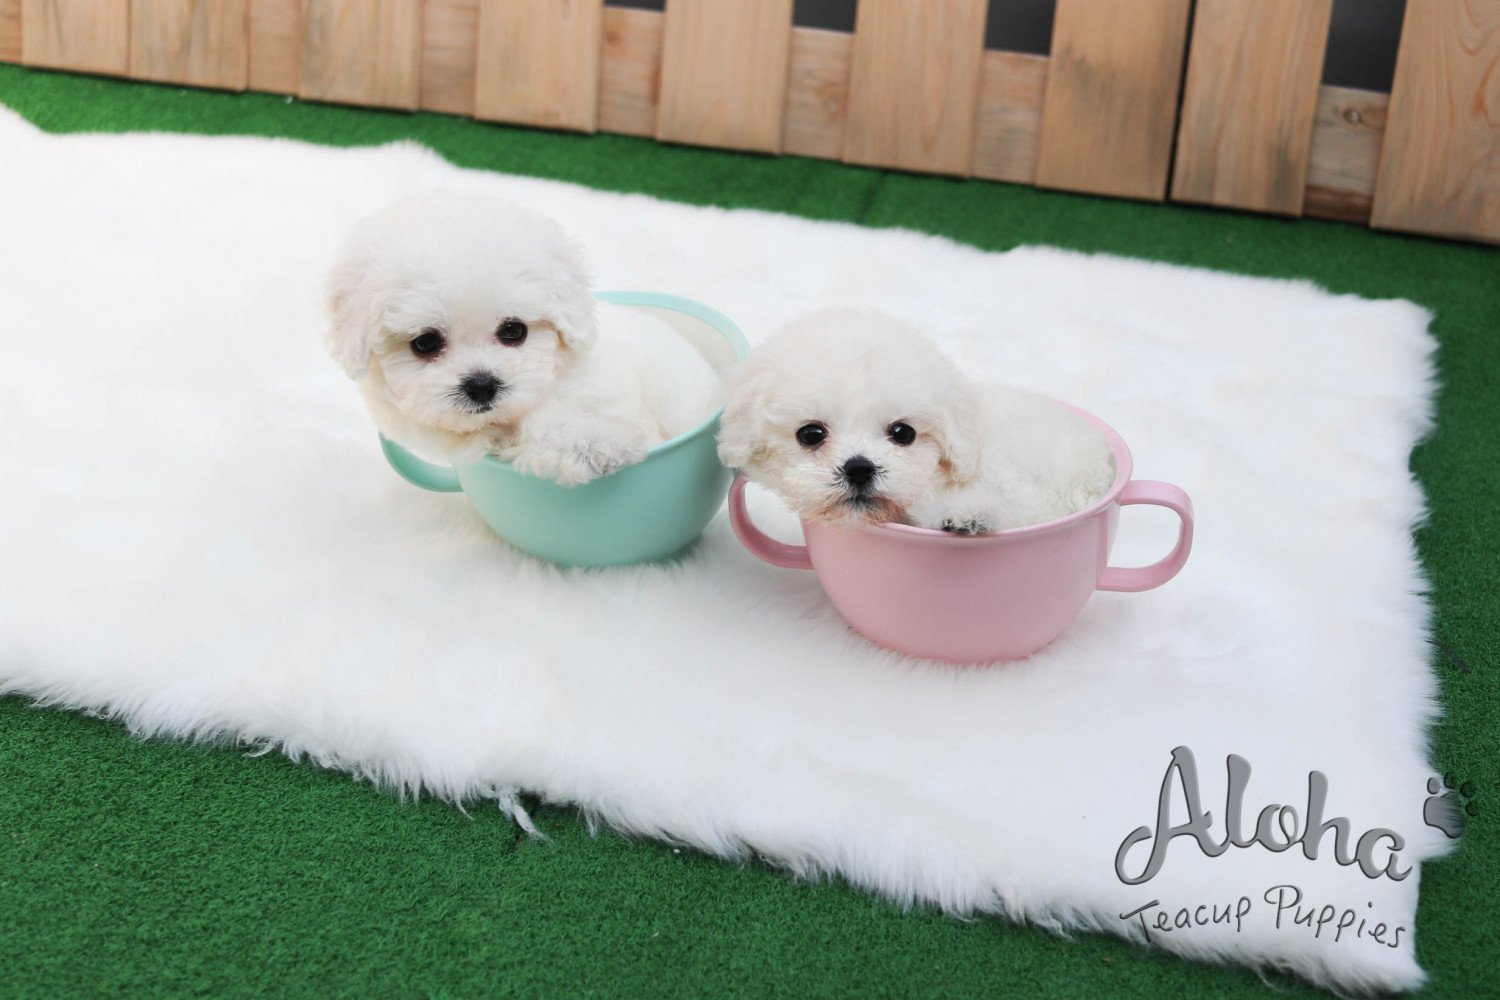 Bichon Frise Puppies For Sale | New York, NY #303161